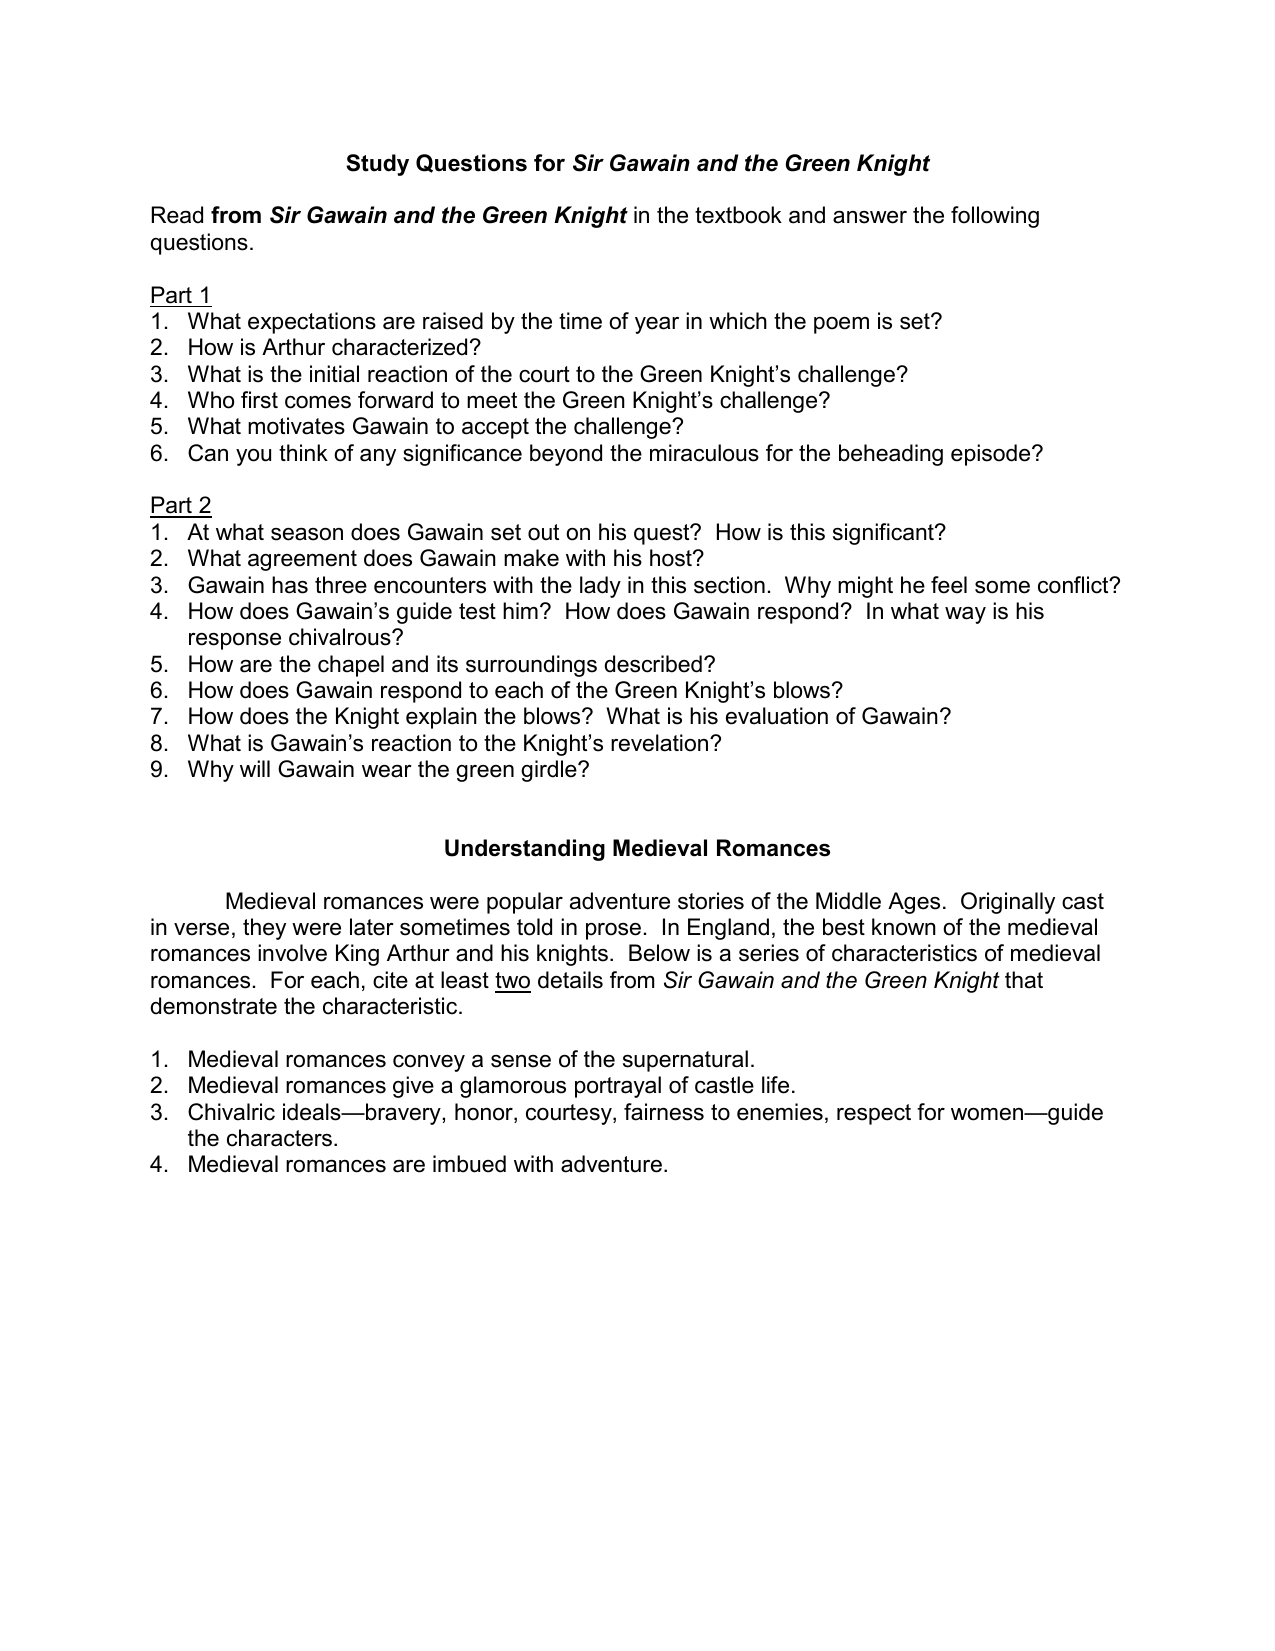 Essay About Good Health Cfaedfbfebacdpng Harvard Business School Essay also Example Of A Thesis Statement For An Essay Study Questions For Sir Gawain And The Green Knight After High School Essay